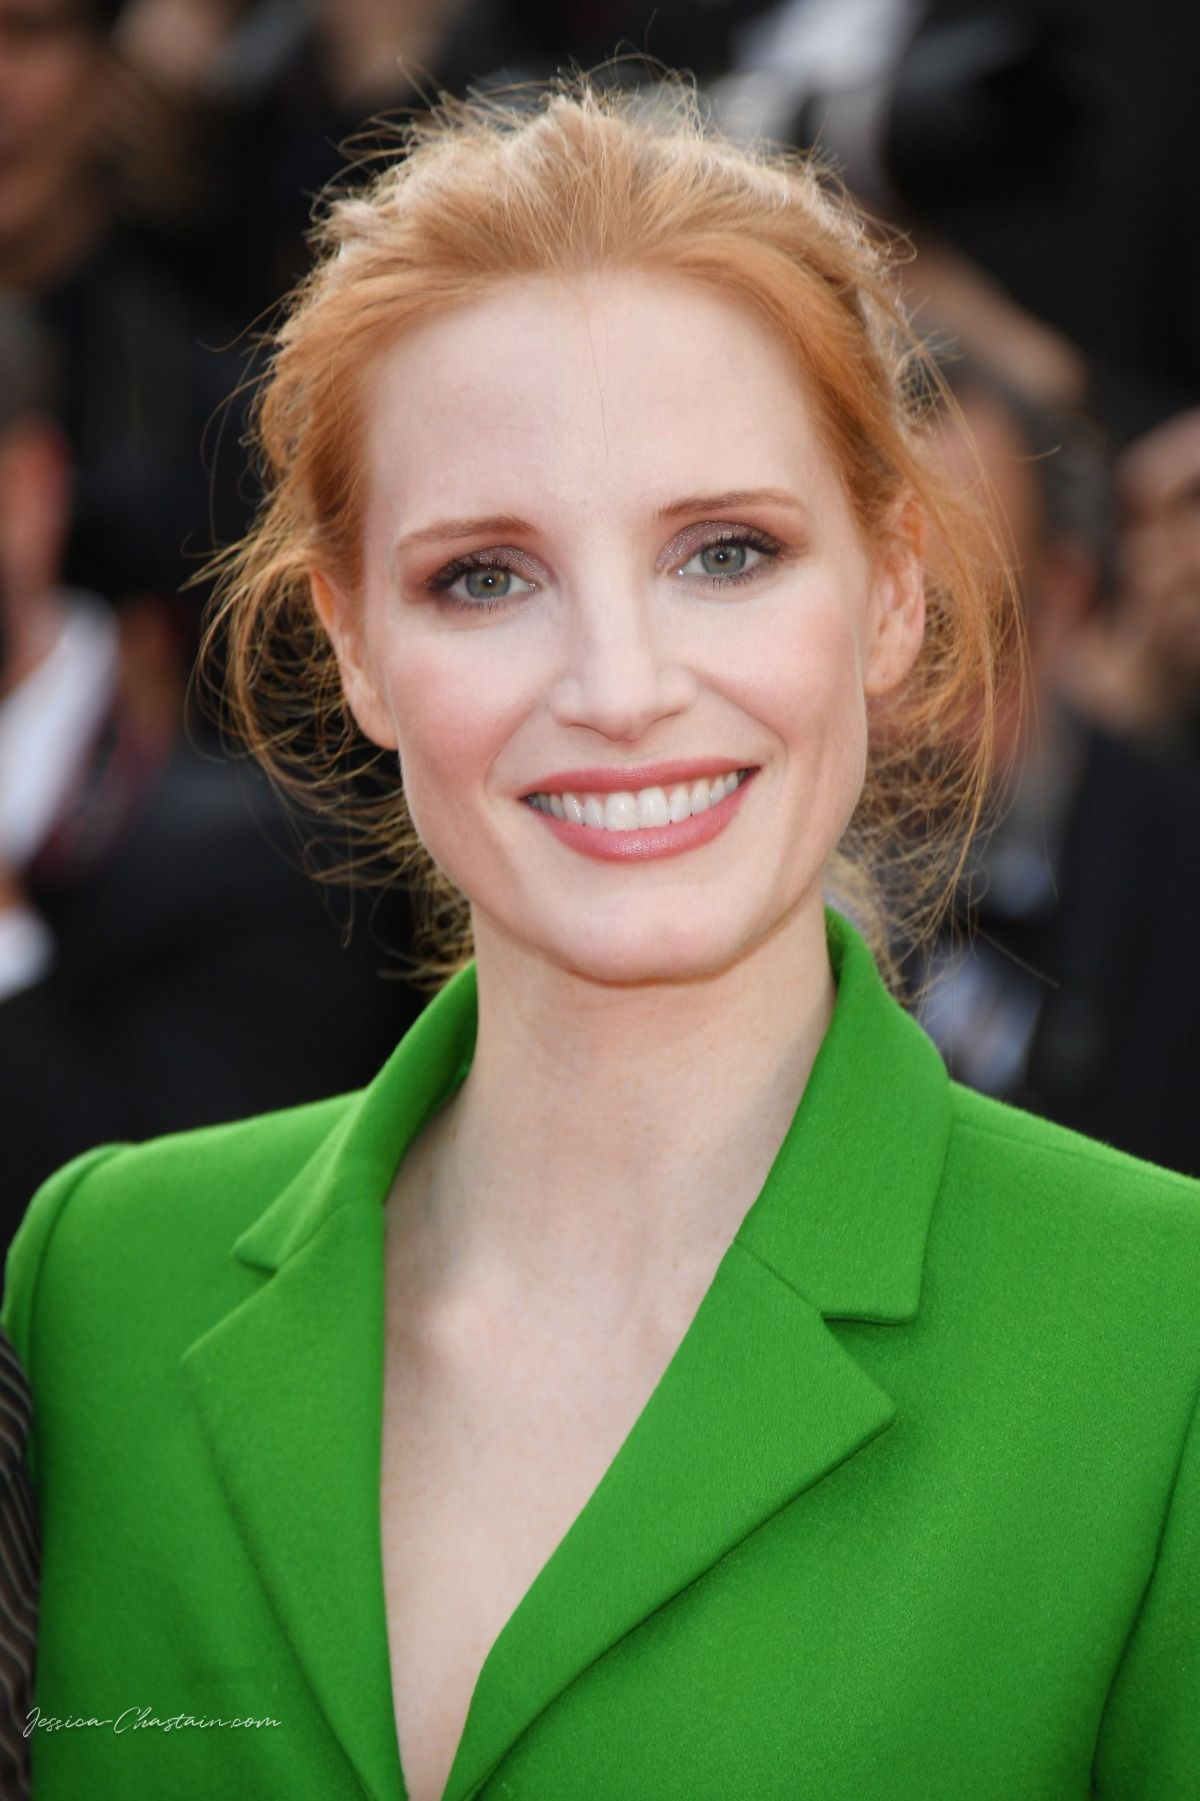 JESSICA CHASTAIN at The Meyerowitz Stories Premiere at ... Jessica Chastain